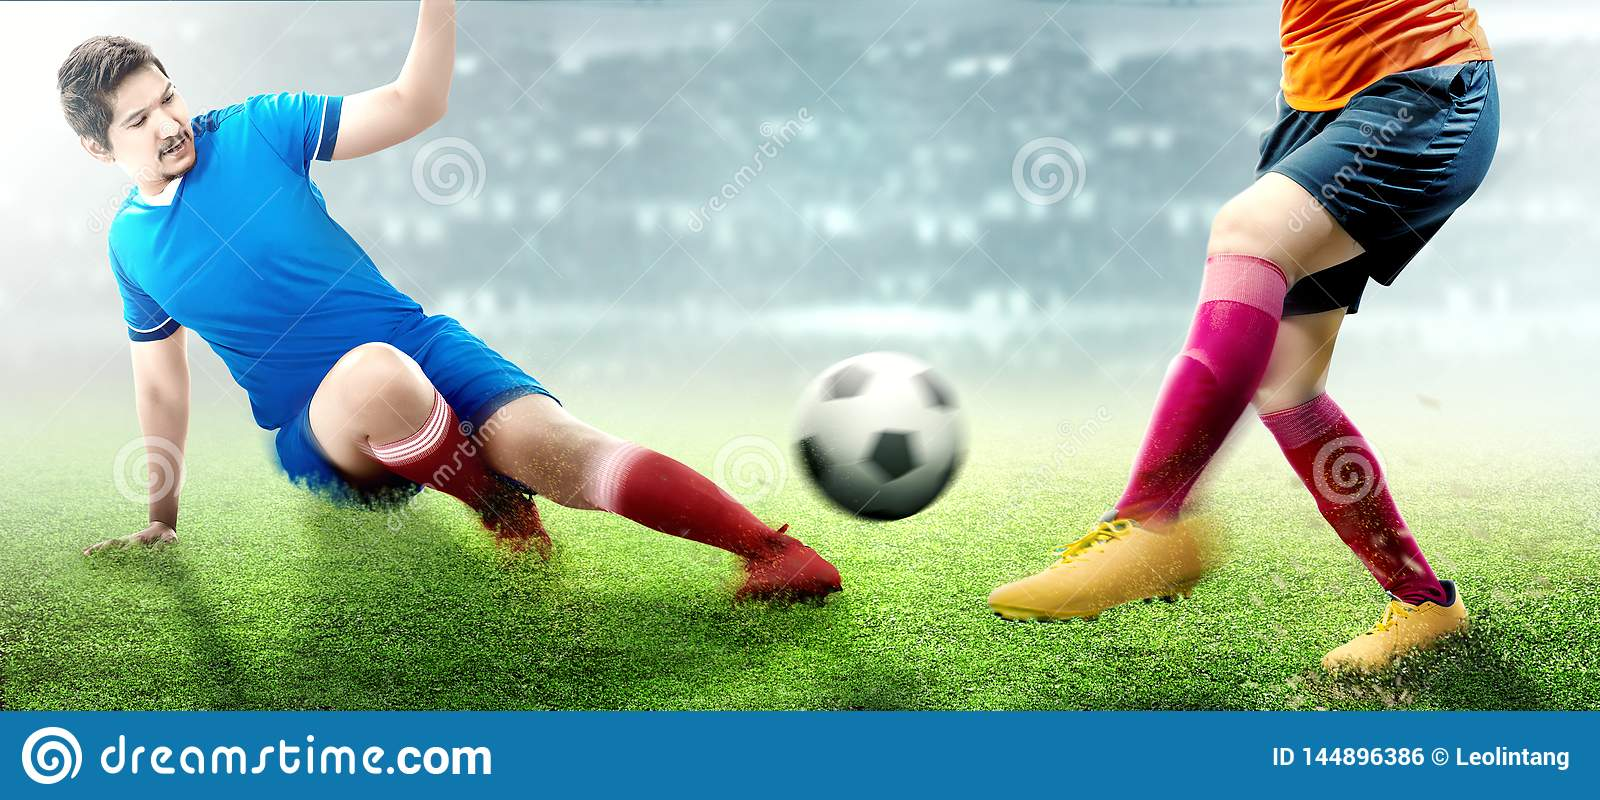 Asian football player man in blue jersey sliding tackle the ball from his opponent